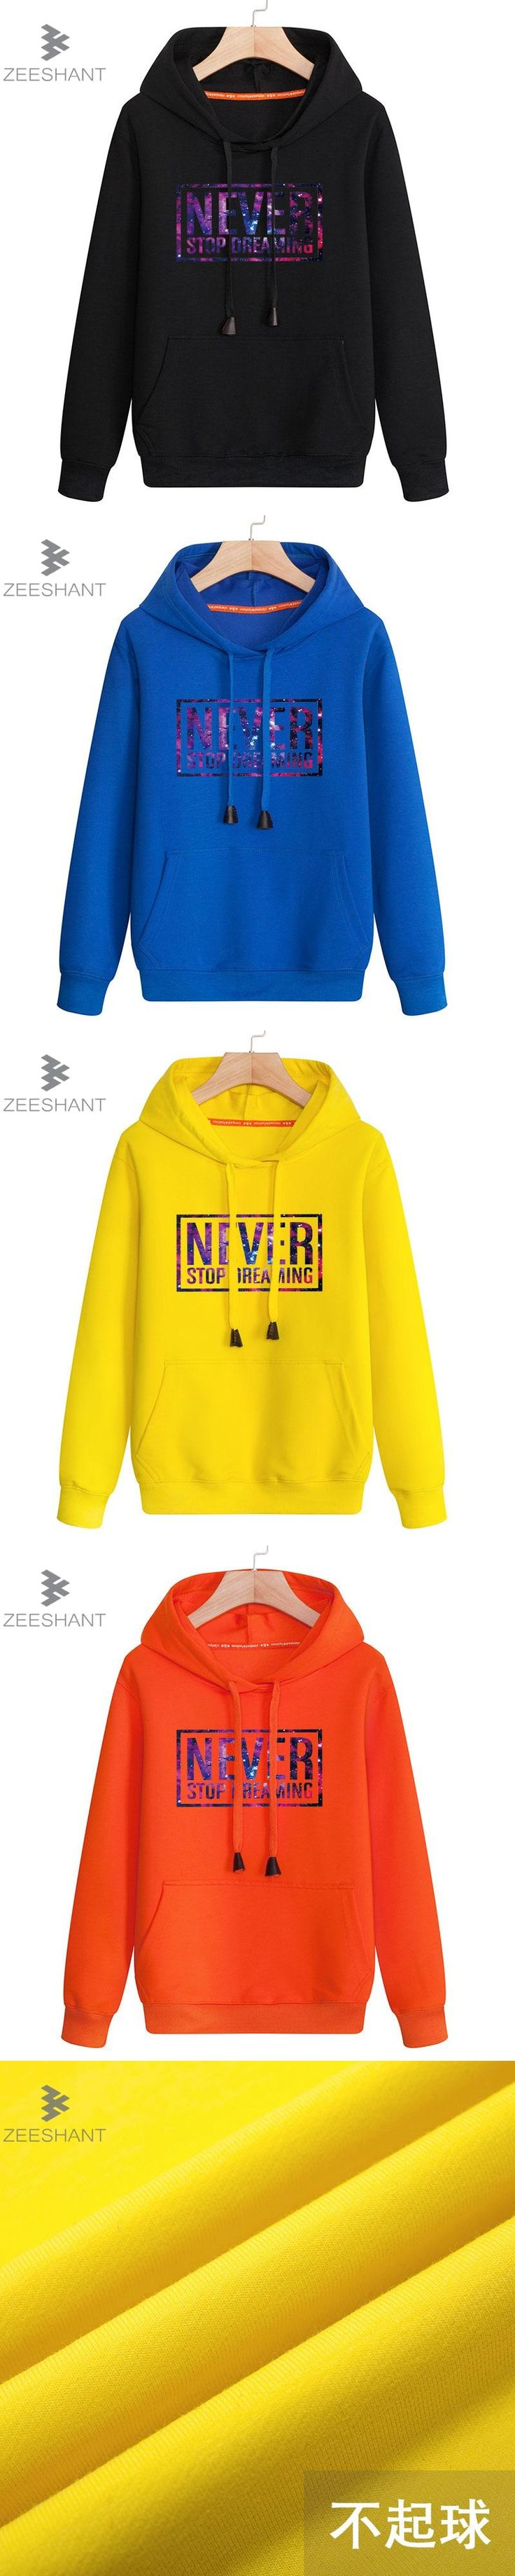 Brand Cotton Men Sweatshirts Long Sleeve Hooded Autumn and Winter Letter Print Hoodie Casual Fashion Men's Coat Yellow Jersey